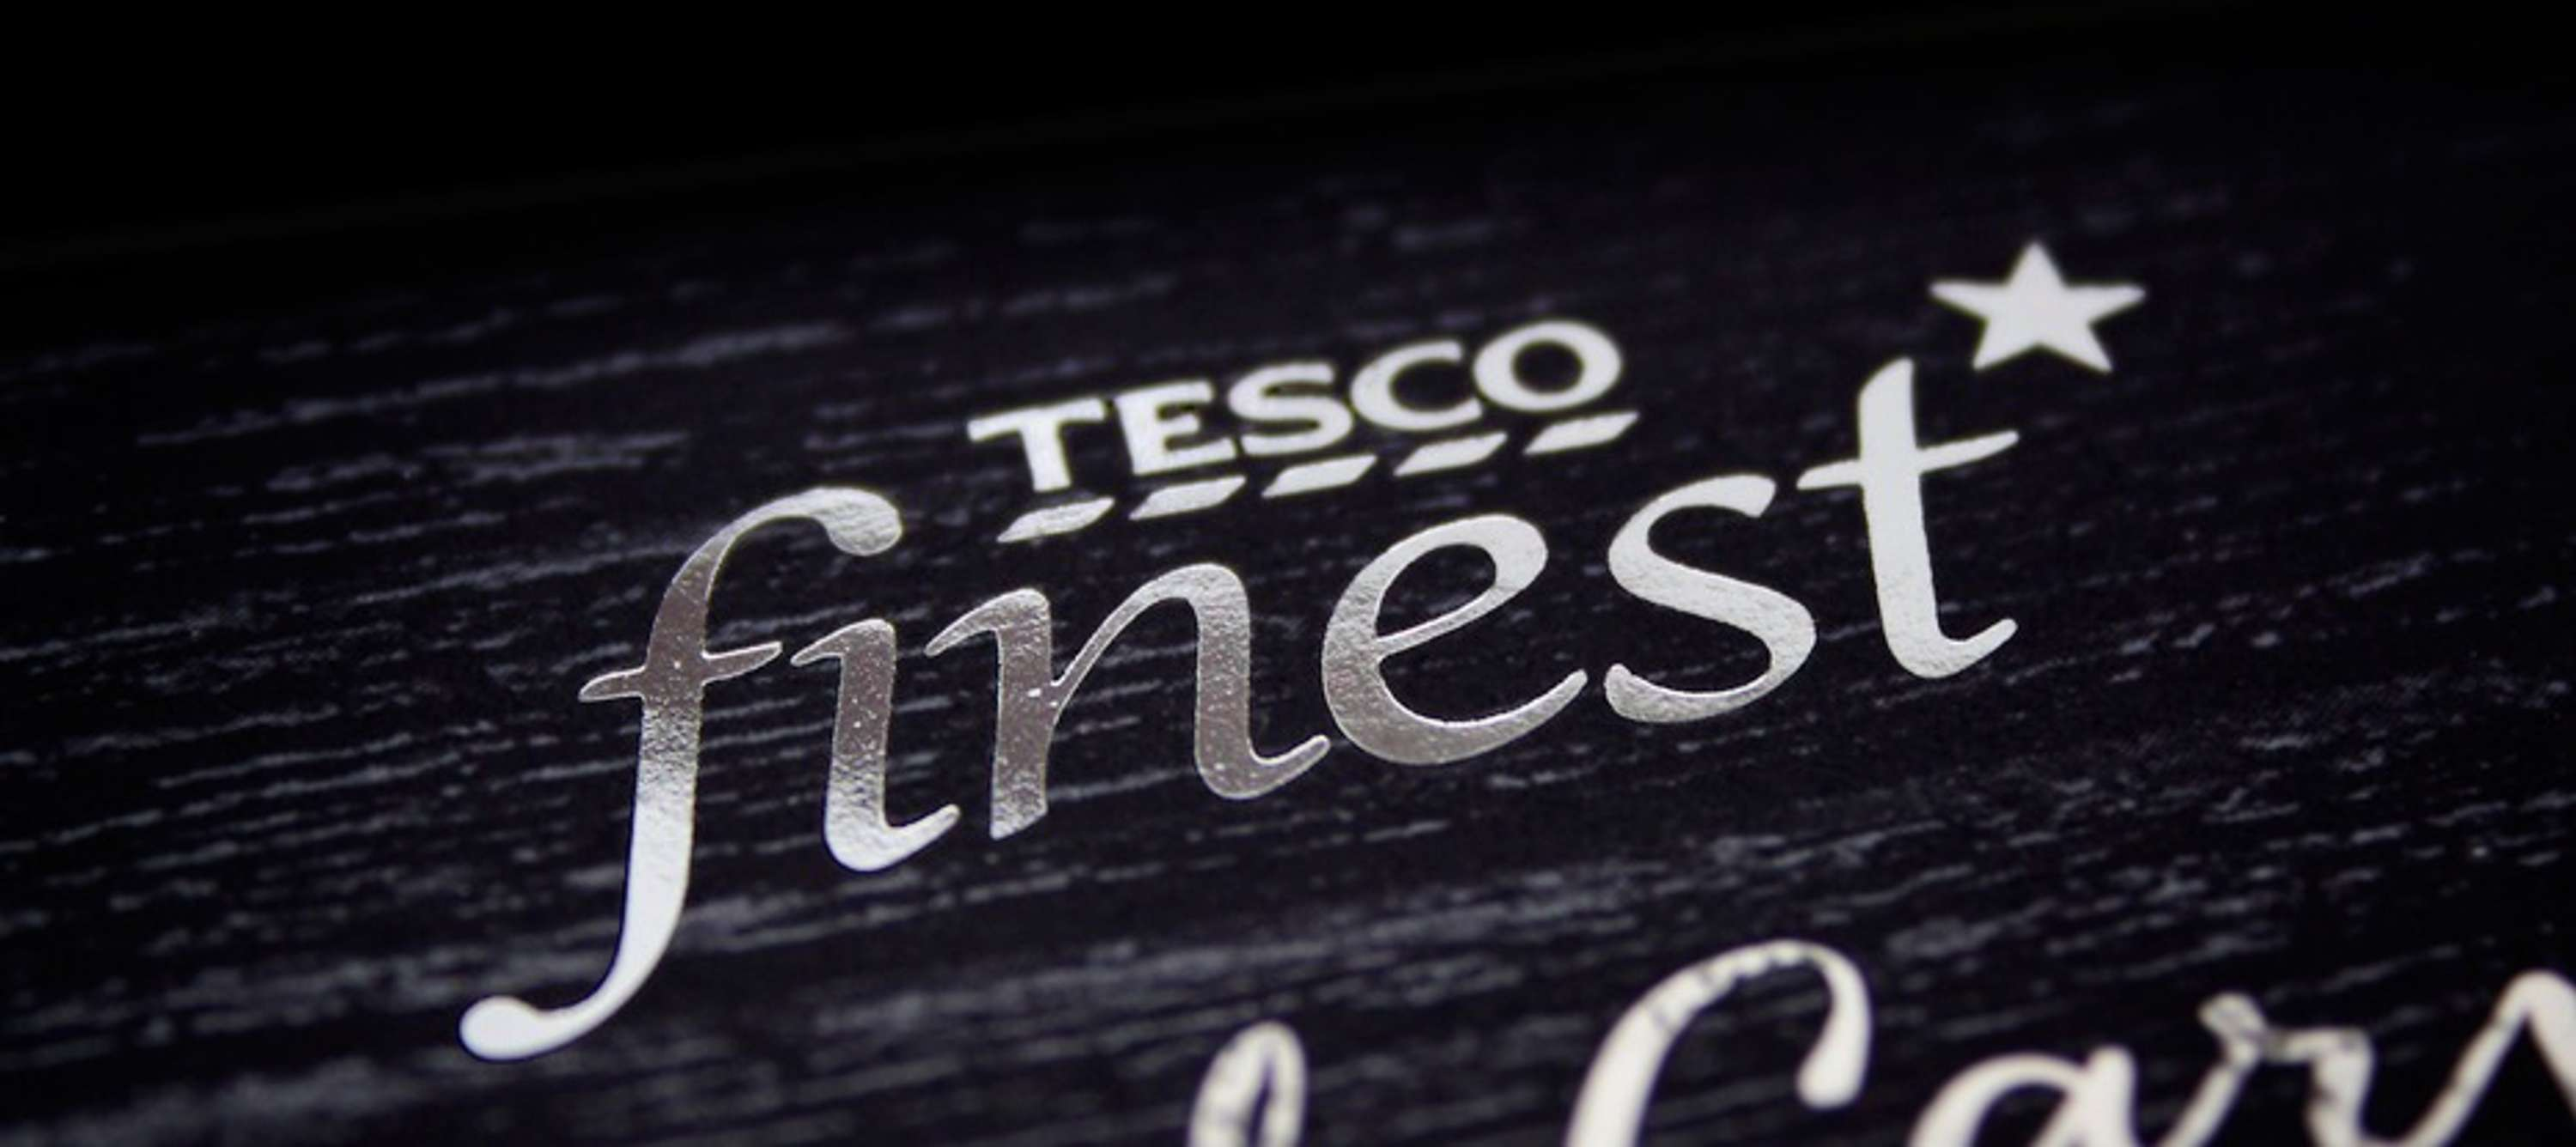 Tesco finest* | The Dots